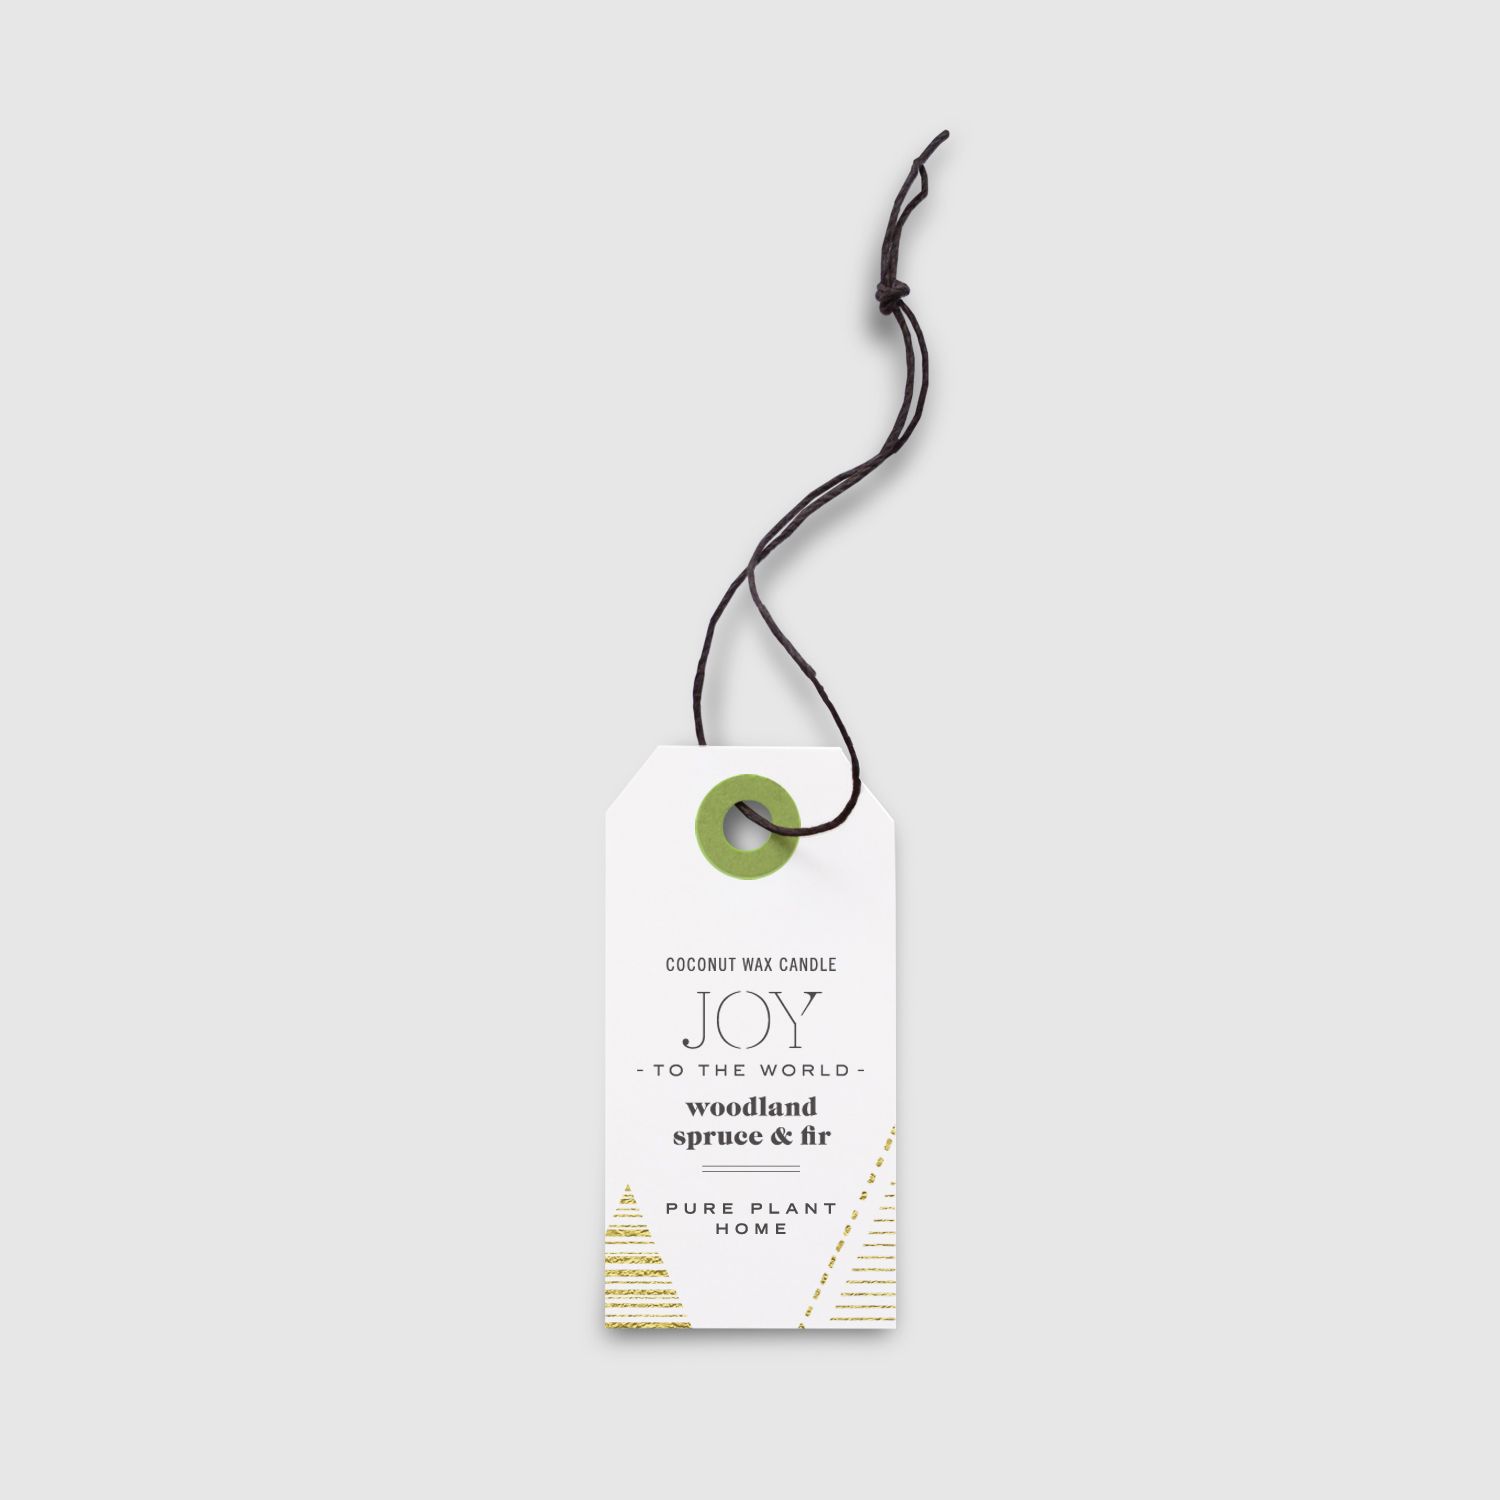 Peggy Wong Studio / hangtag design for Pure Plant Home candle packaging